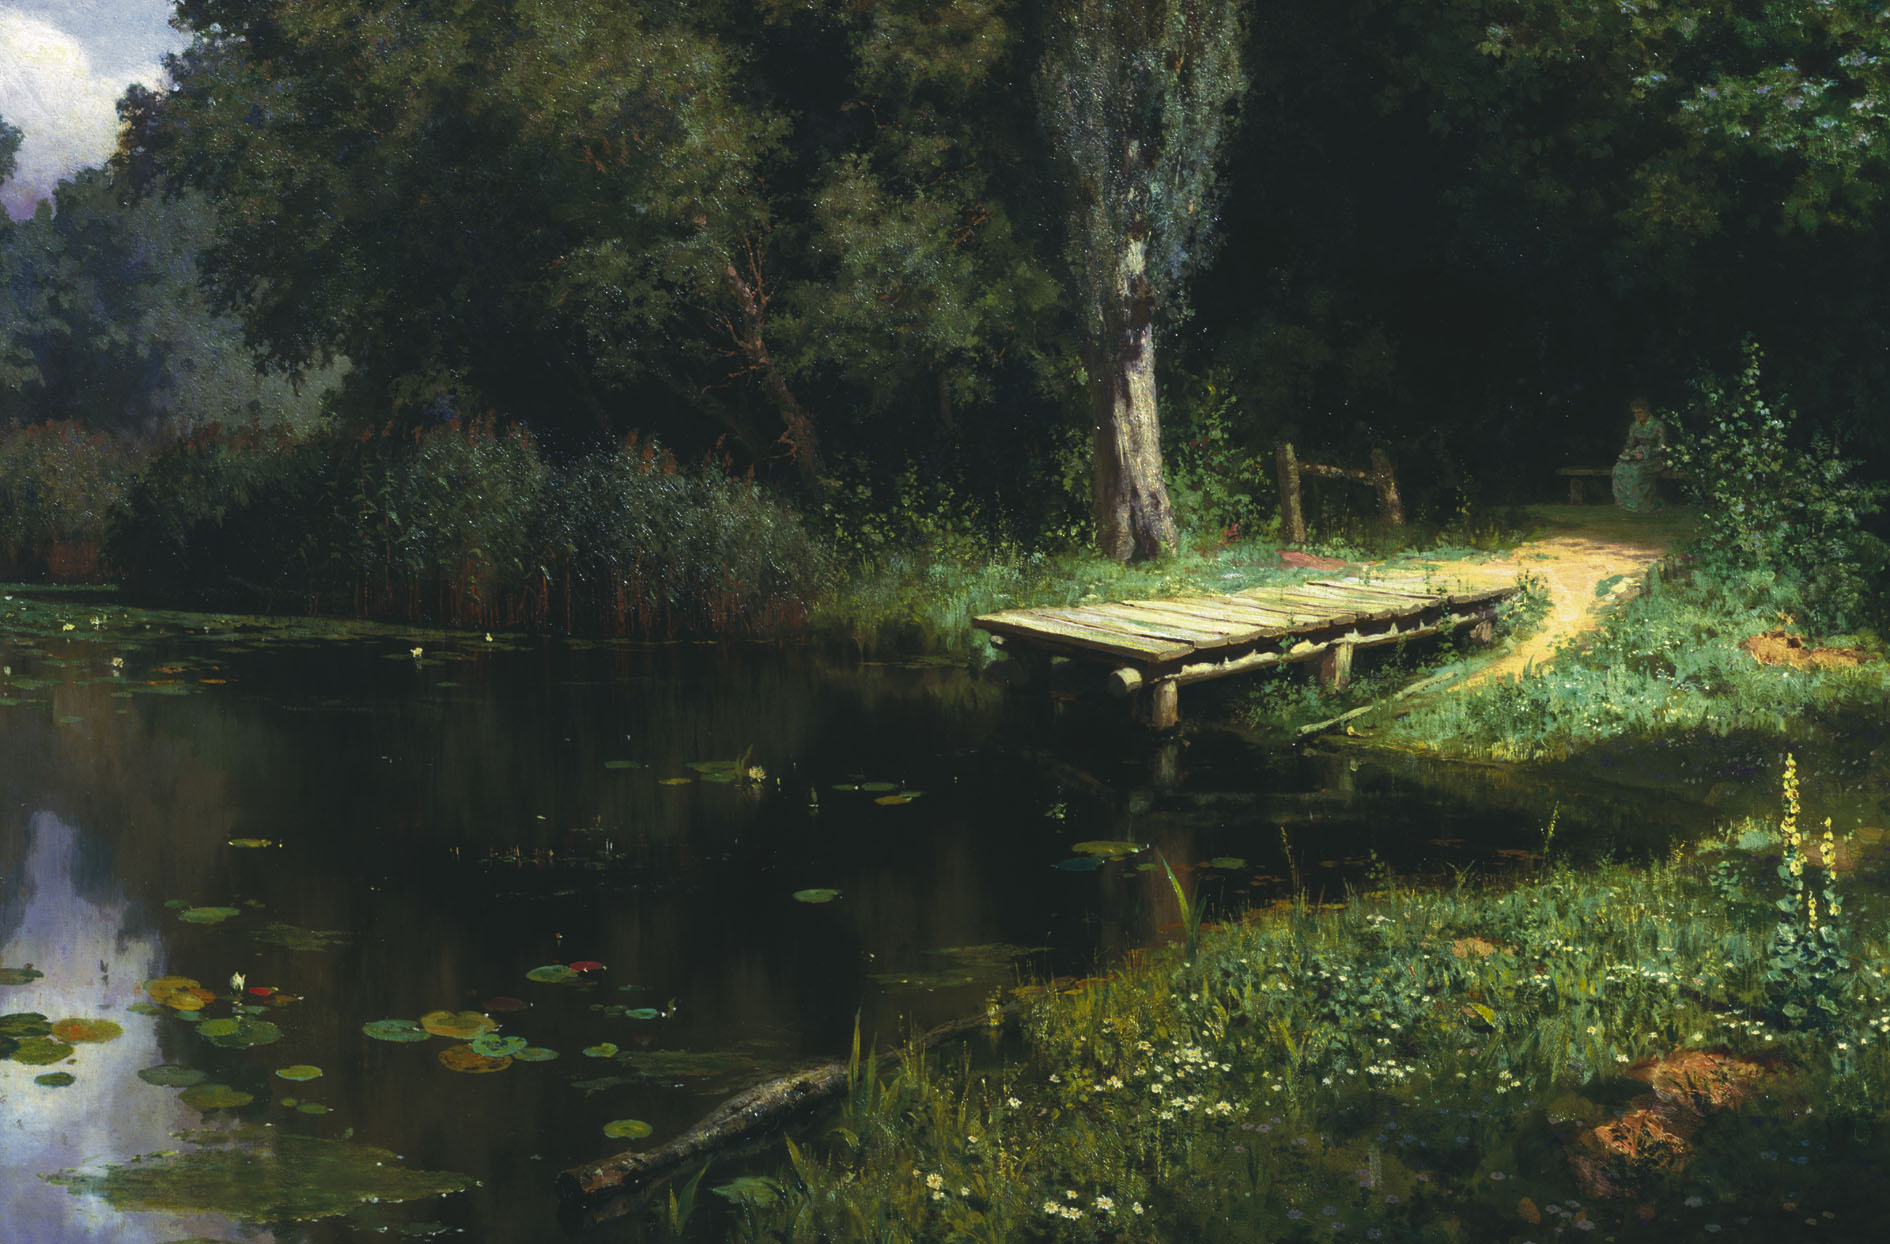 Vasily Polenov - Overgrown pond, oil on canvas (1879)